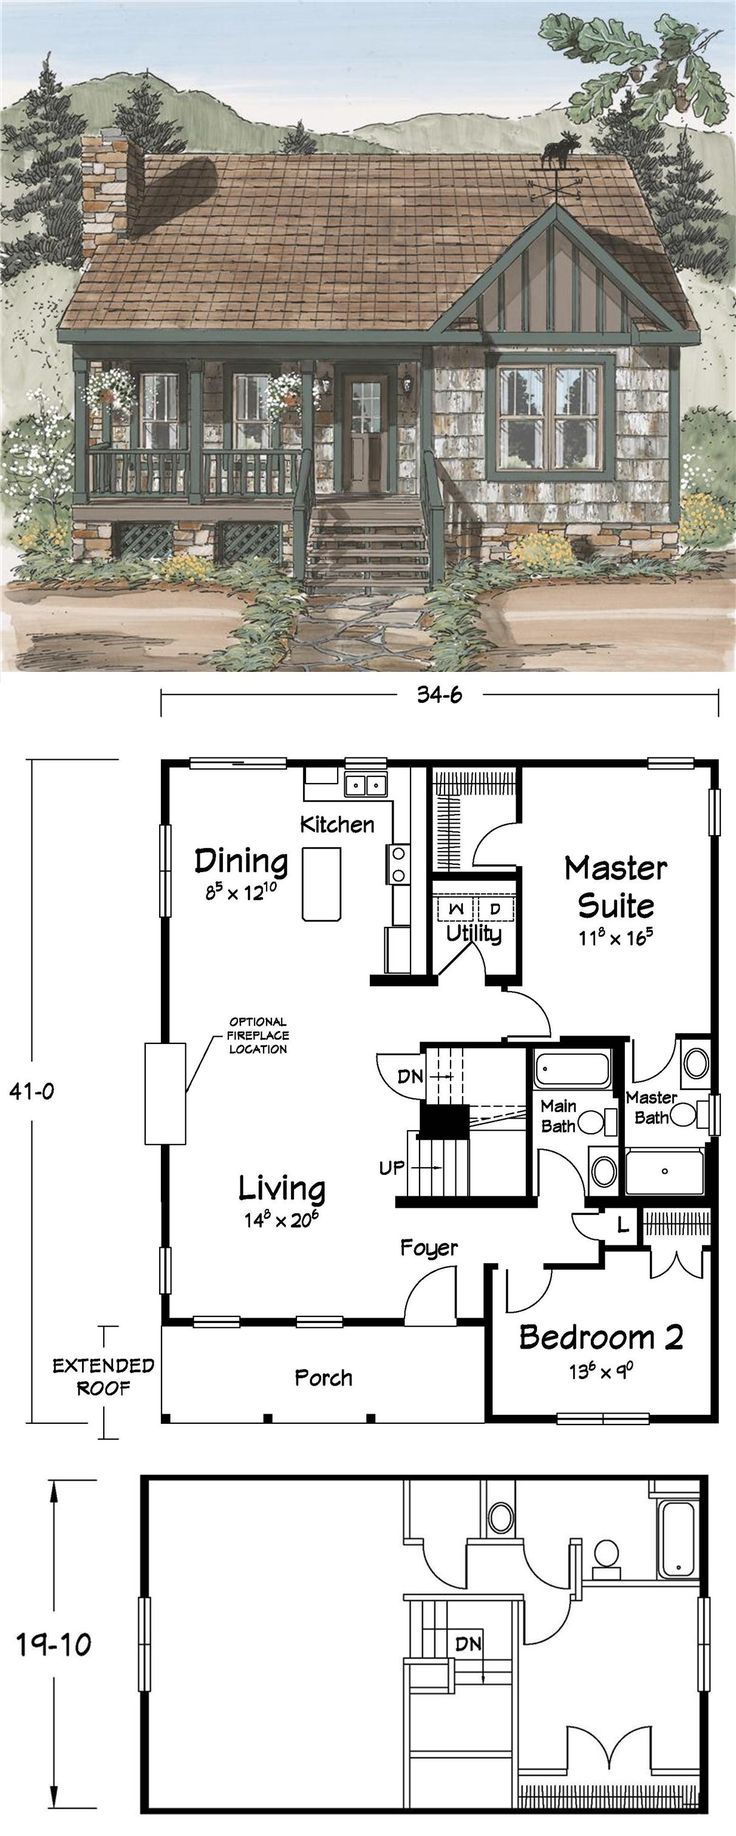 Cute floor plans tiny homes pinterest cabin small Small house designs and floor plans